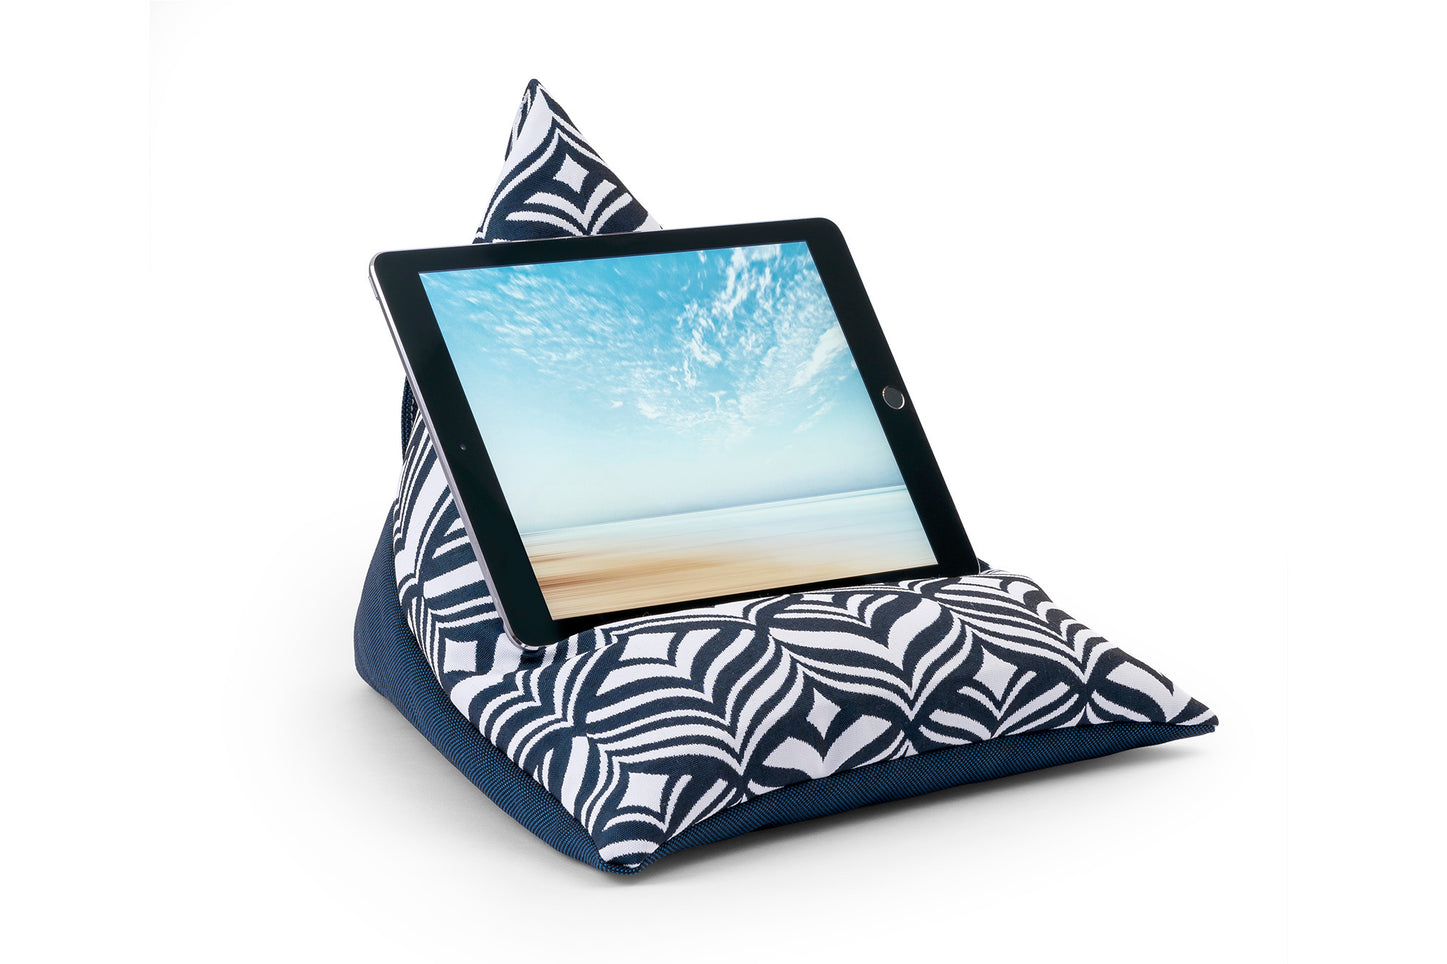 iPad, Tablet & eReader Bean Bag Stand in Tulip Navy/Navy Base